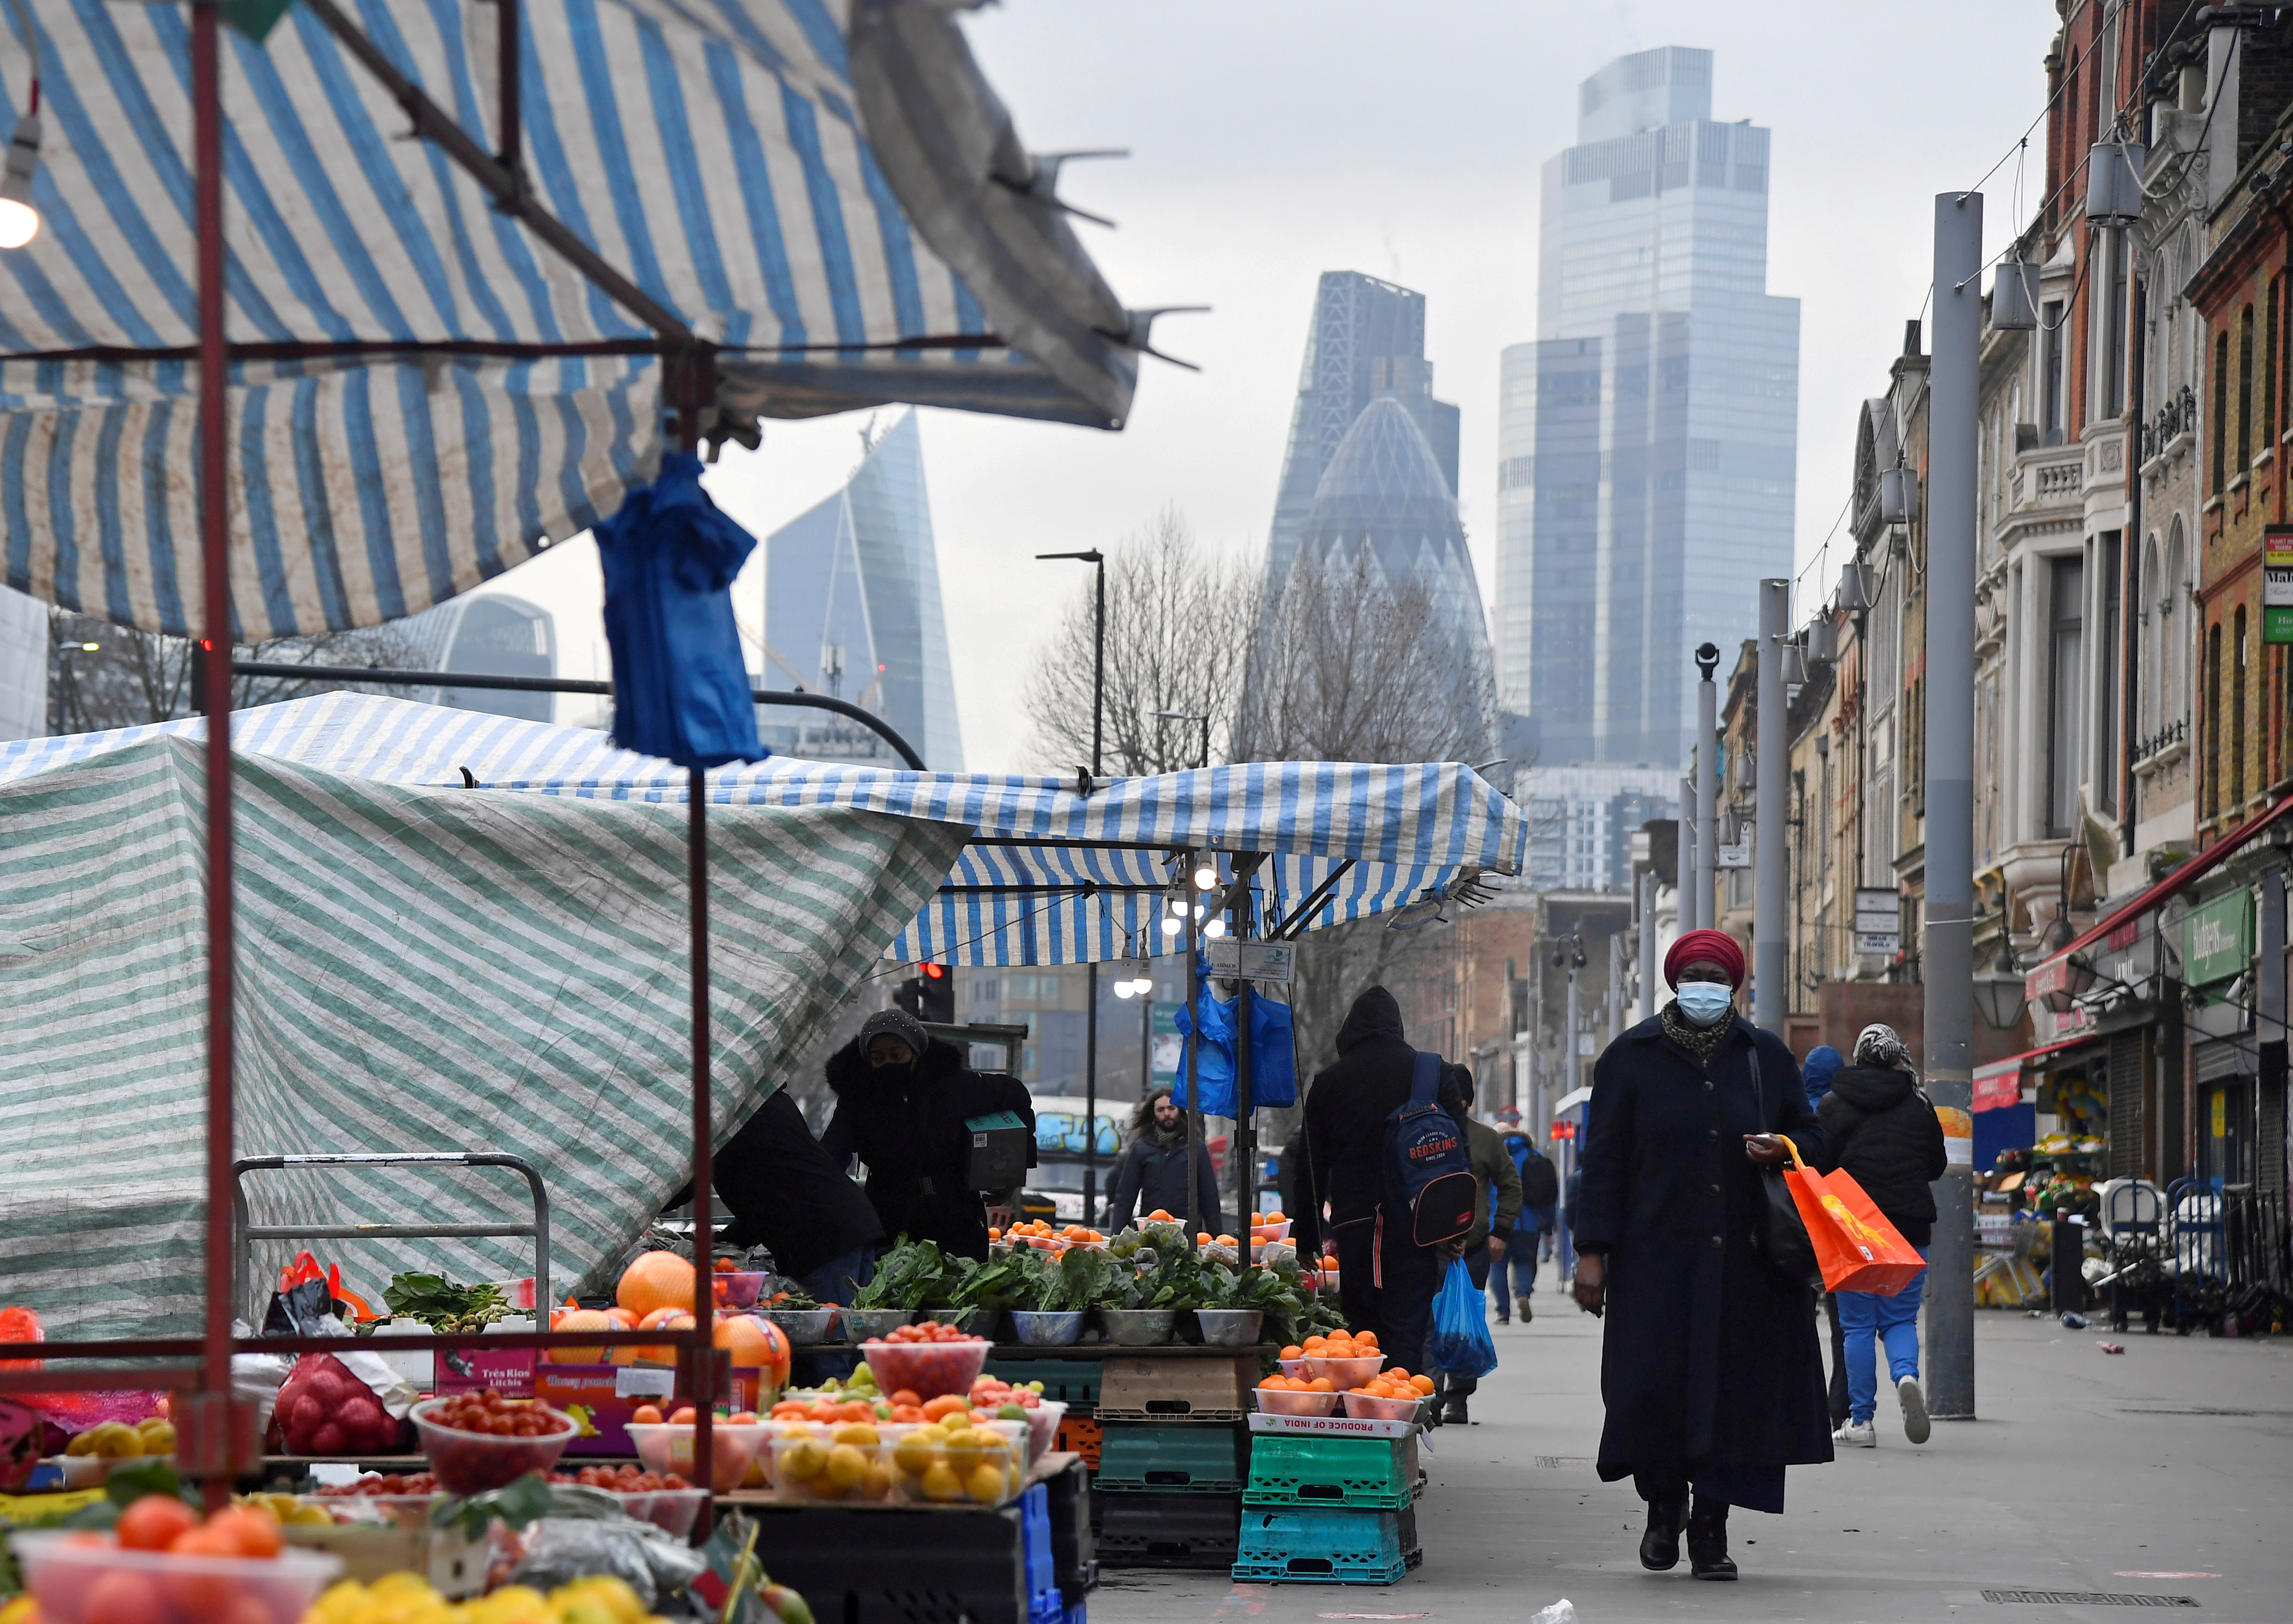 People shop at market stalls, with skyscrapers of the CIty of London financial district seen behind, amid the coronavirus disease (COVID-19) pandemic, in London, Britain, January 15, 2021. REUTERS/Toby Melville